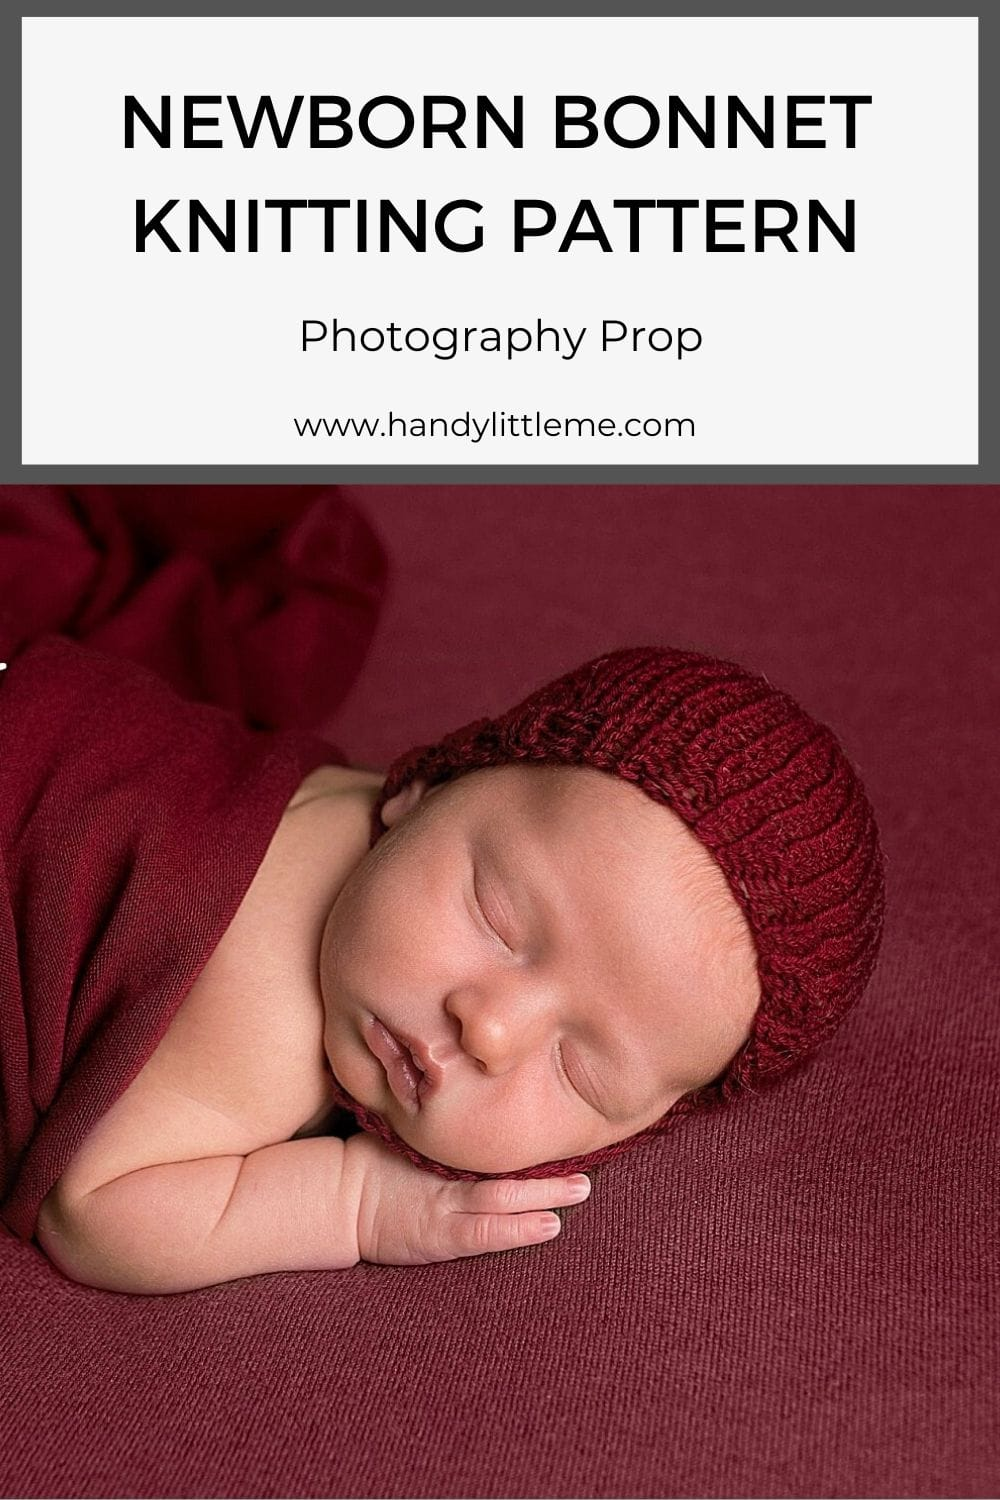 Newborn photo prop bonnet pattern